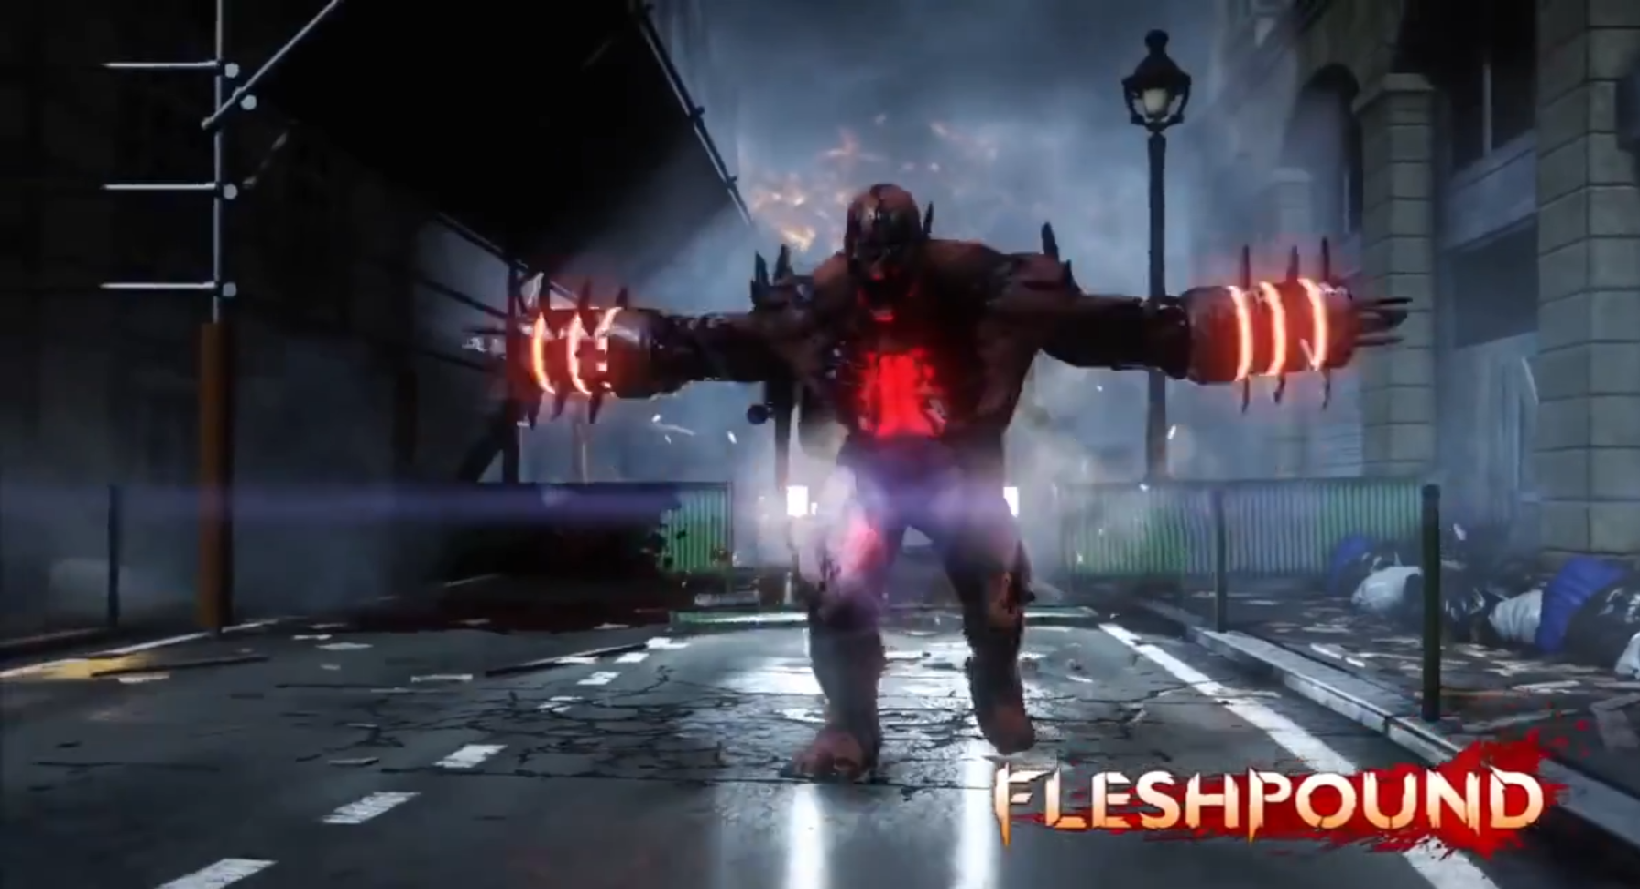 The Fleshpound Is The Last Of The Elite ZEDu0027s From Killing Floor 1 He Is  Also The Biggest Of The ZEDu0027s And The Most Dangerous ZED.